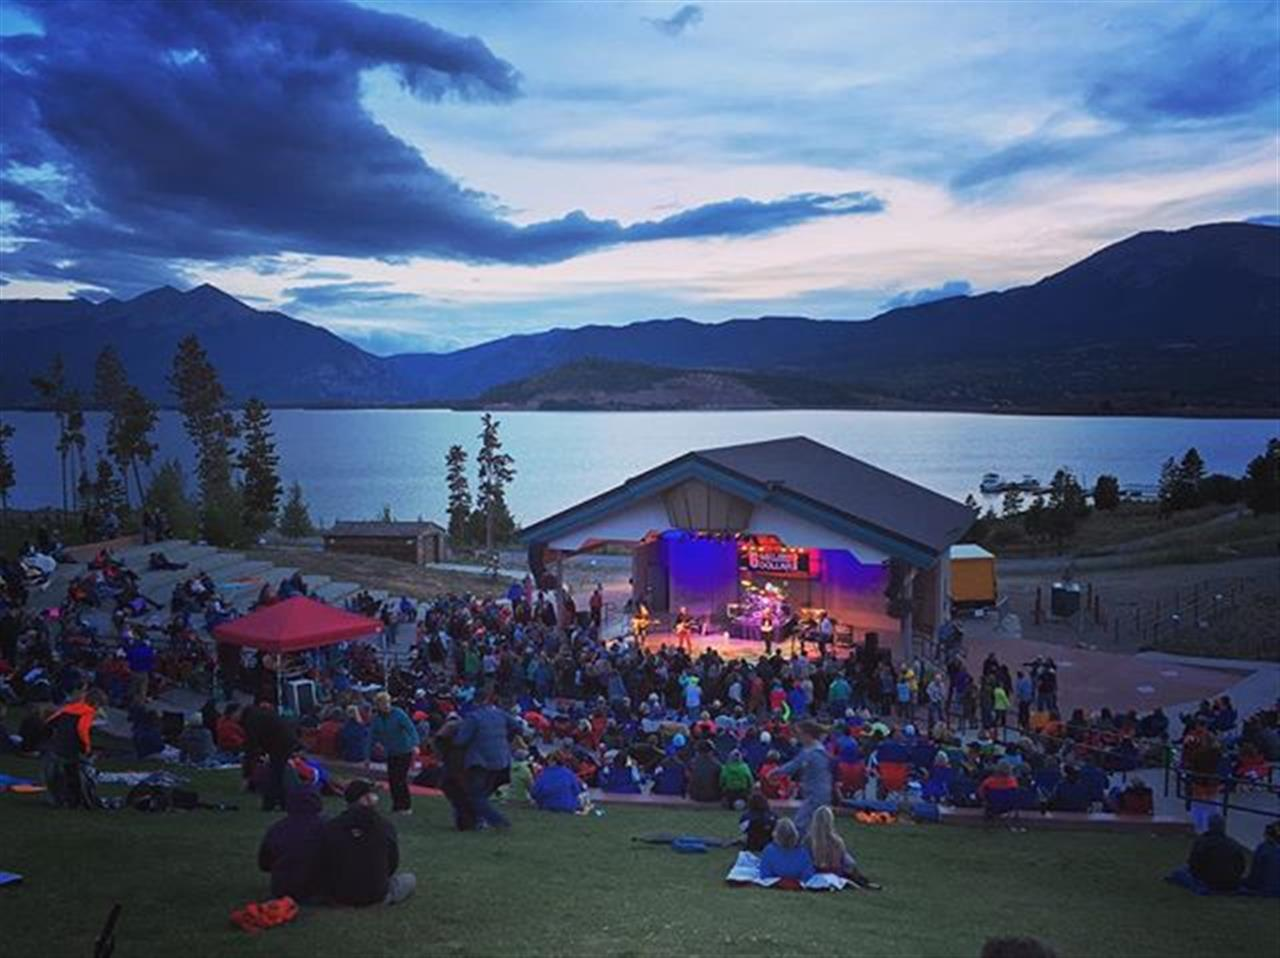 Another stunning weekend in Summit County!! What a venue we have, so lucky!!! #6MDB #Dillon #Colorado #amphitheatre #livemusic #livelocal #lakedillon